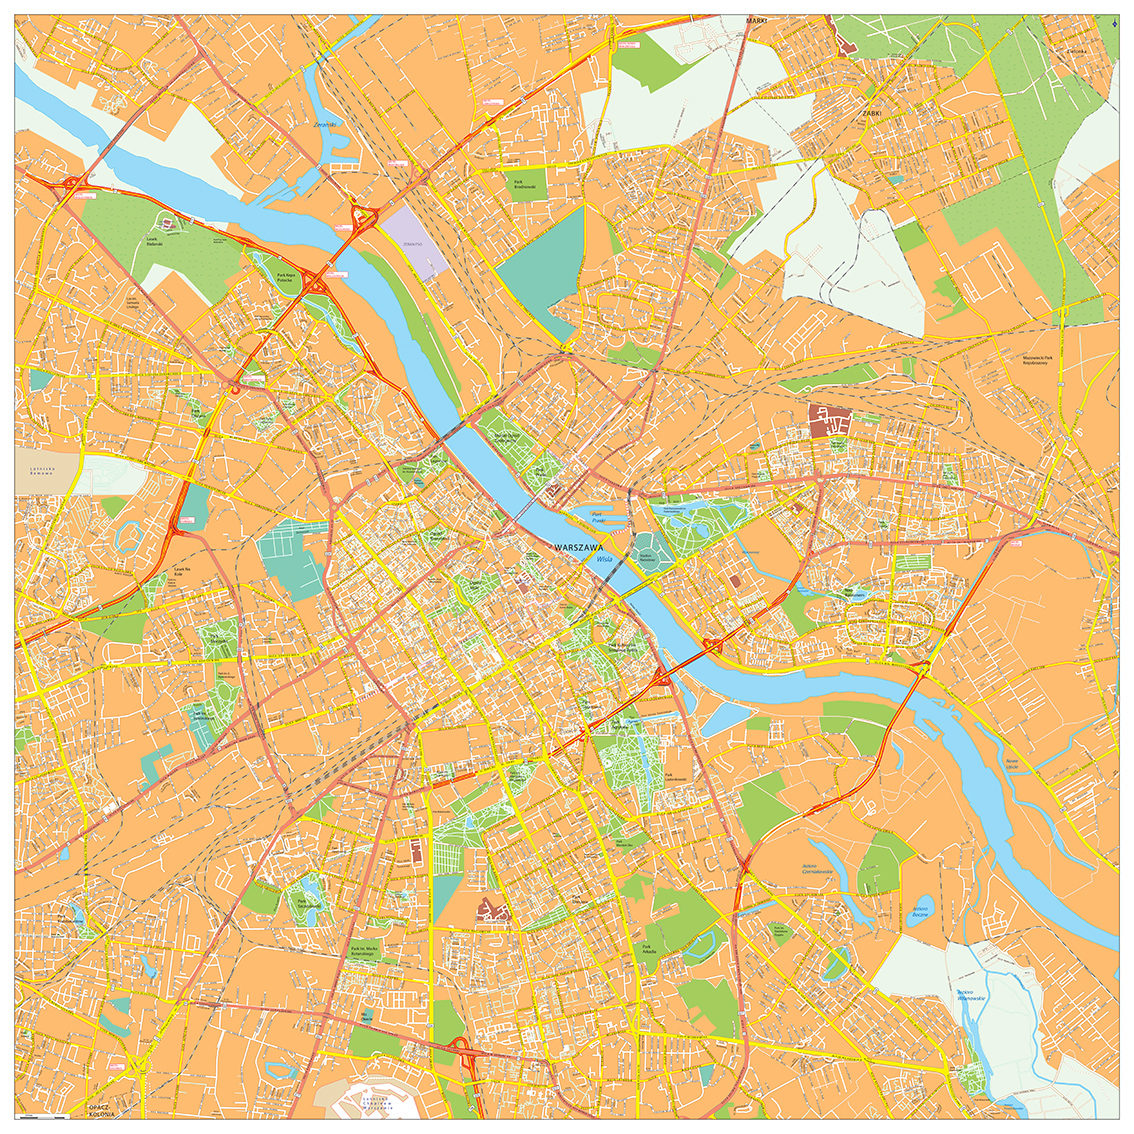 Warsaw city map